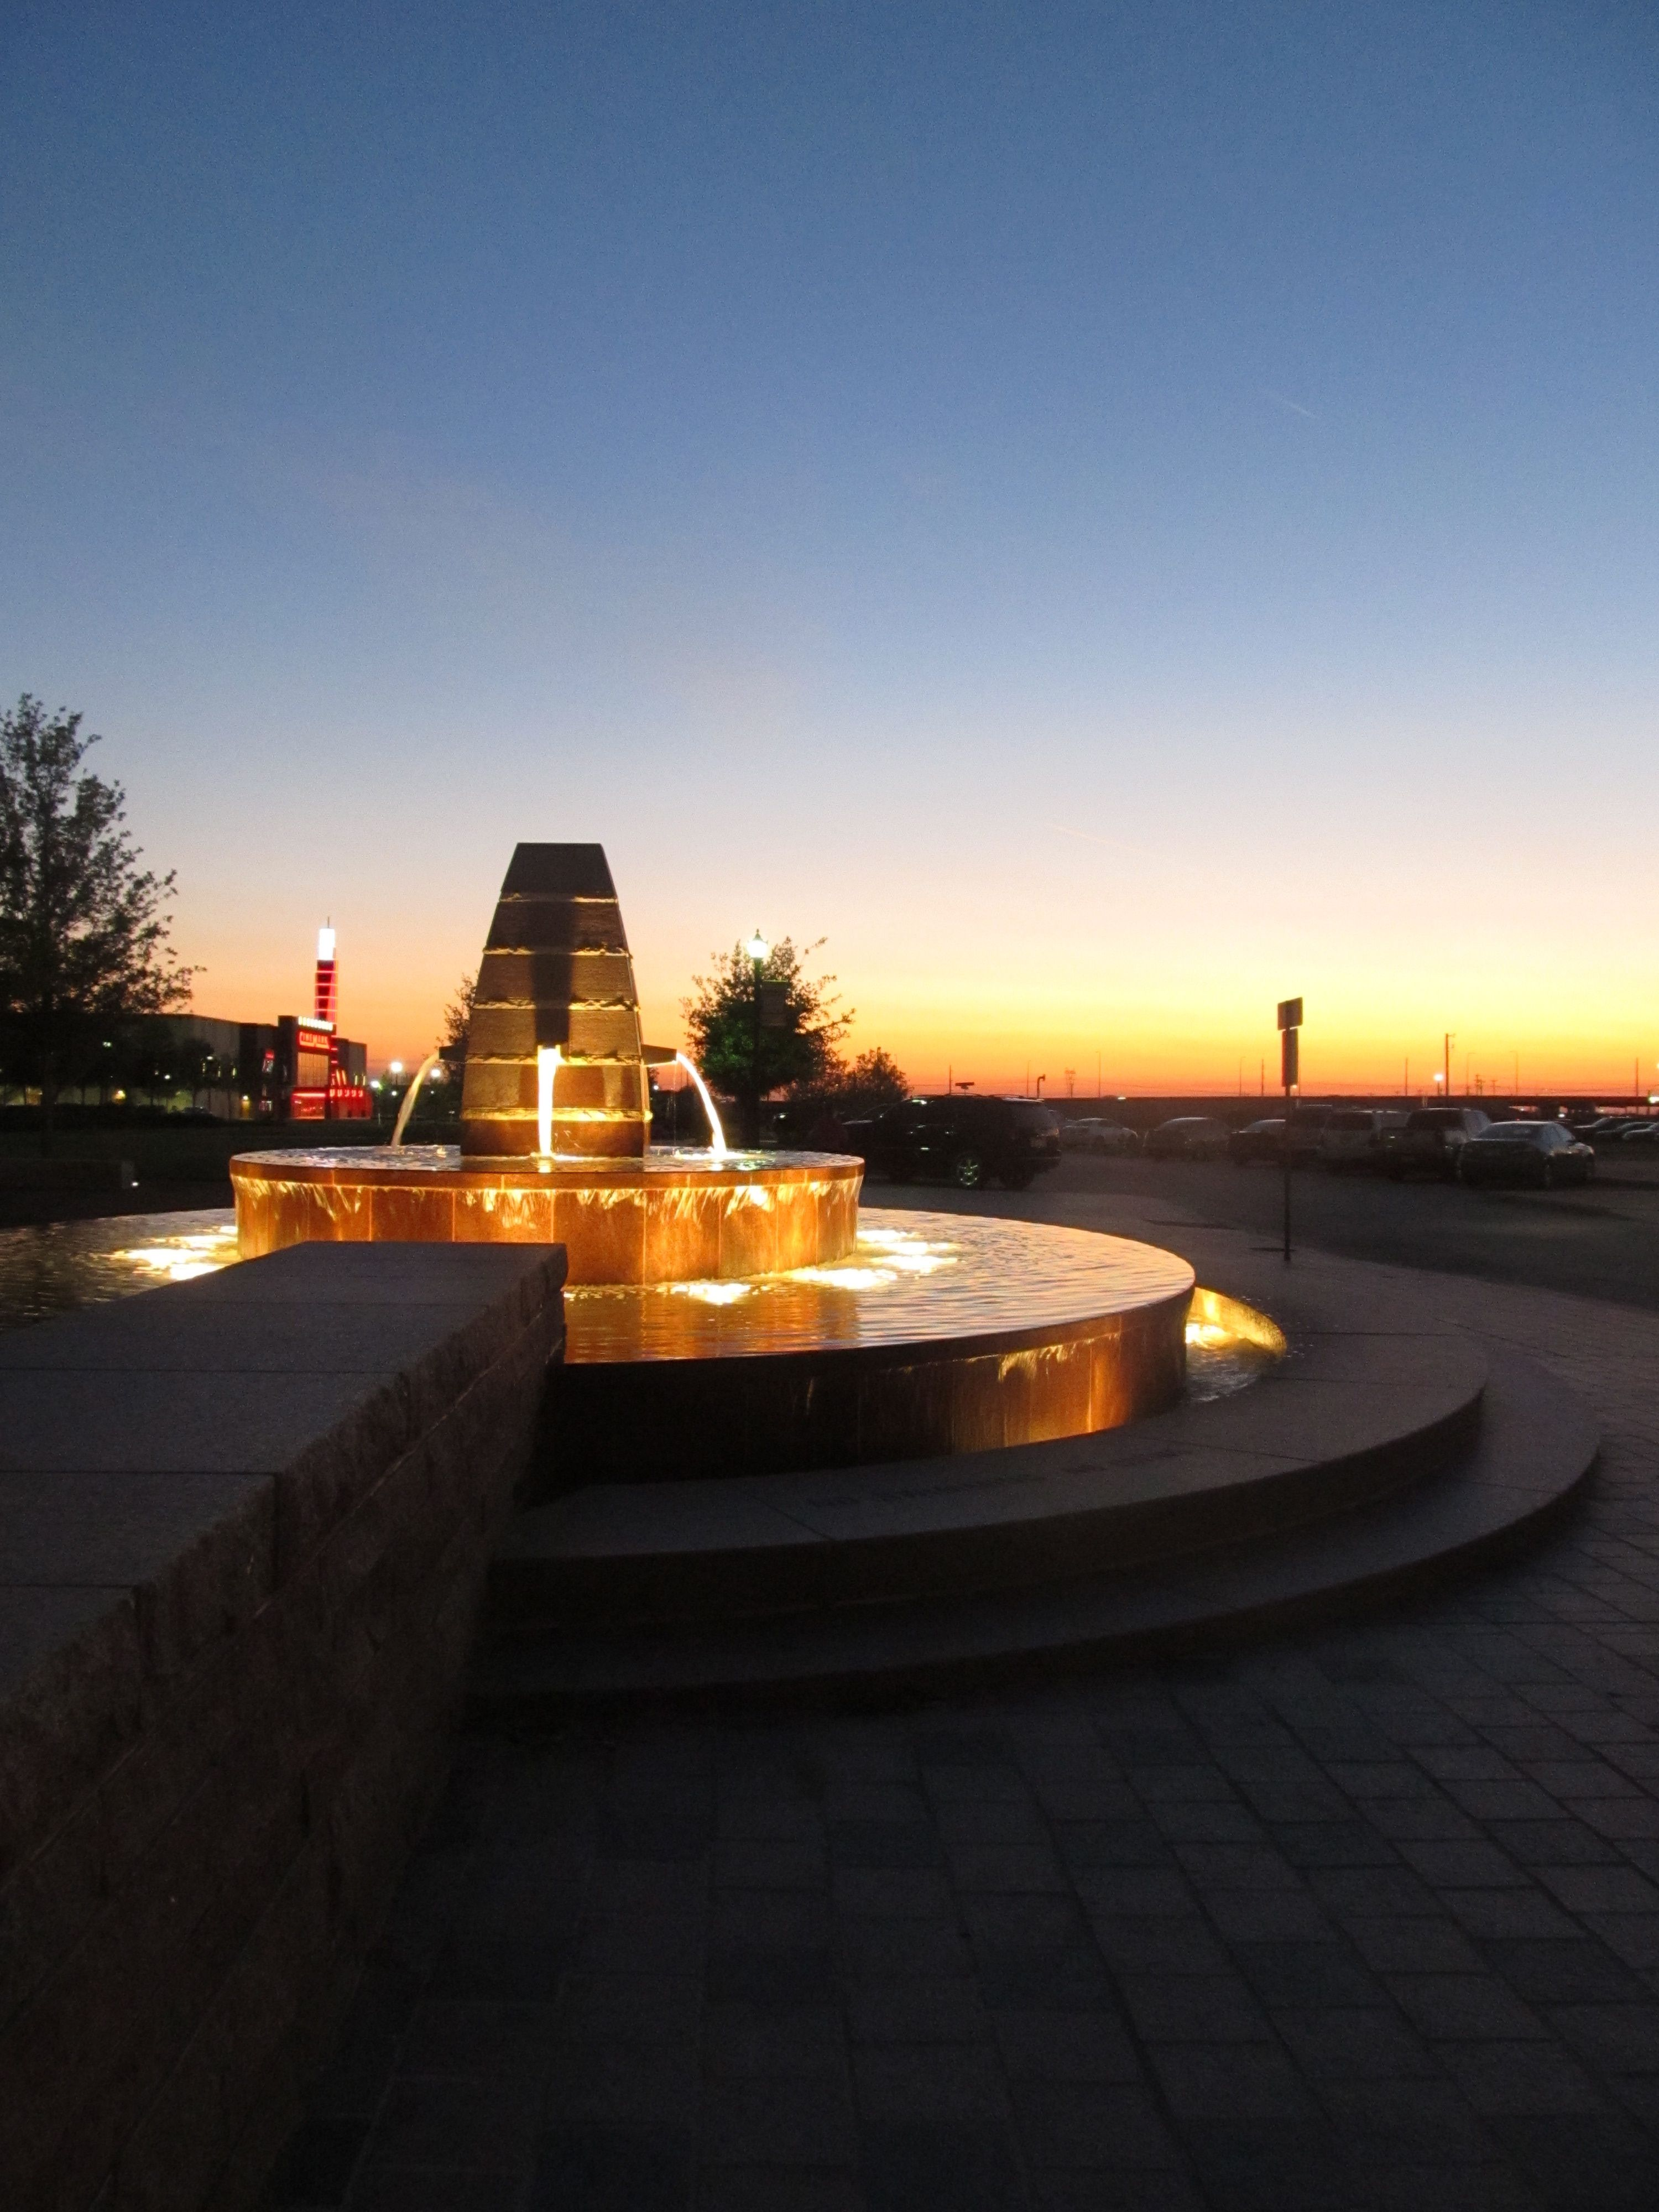 Sunset over City Hall Fountain in Frisco, Texas in 2019